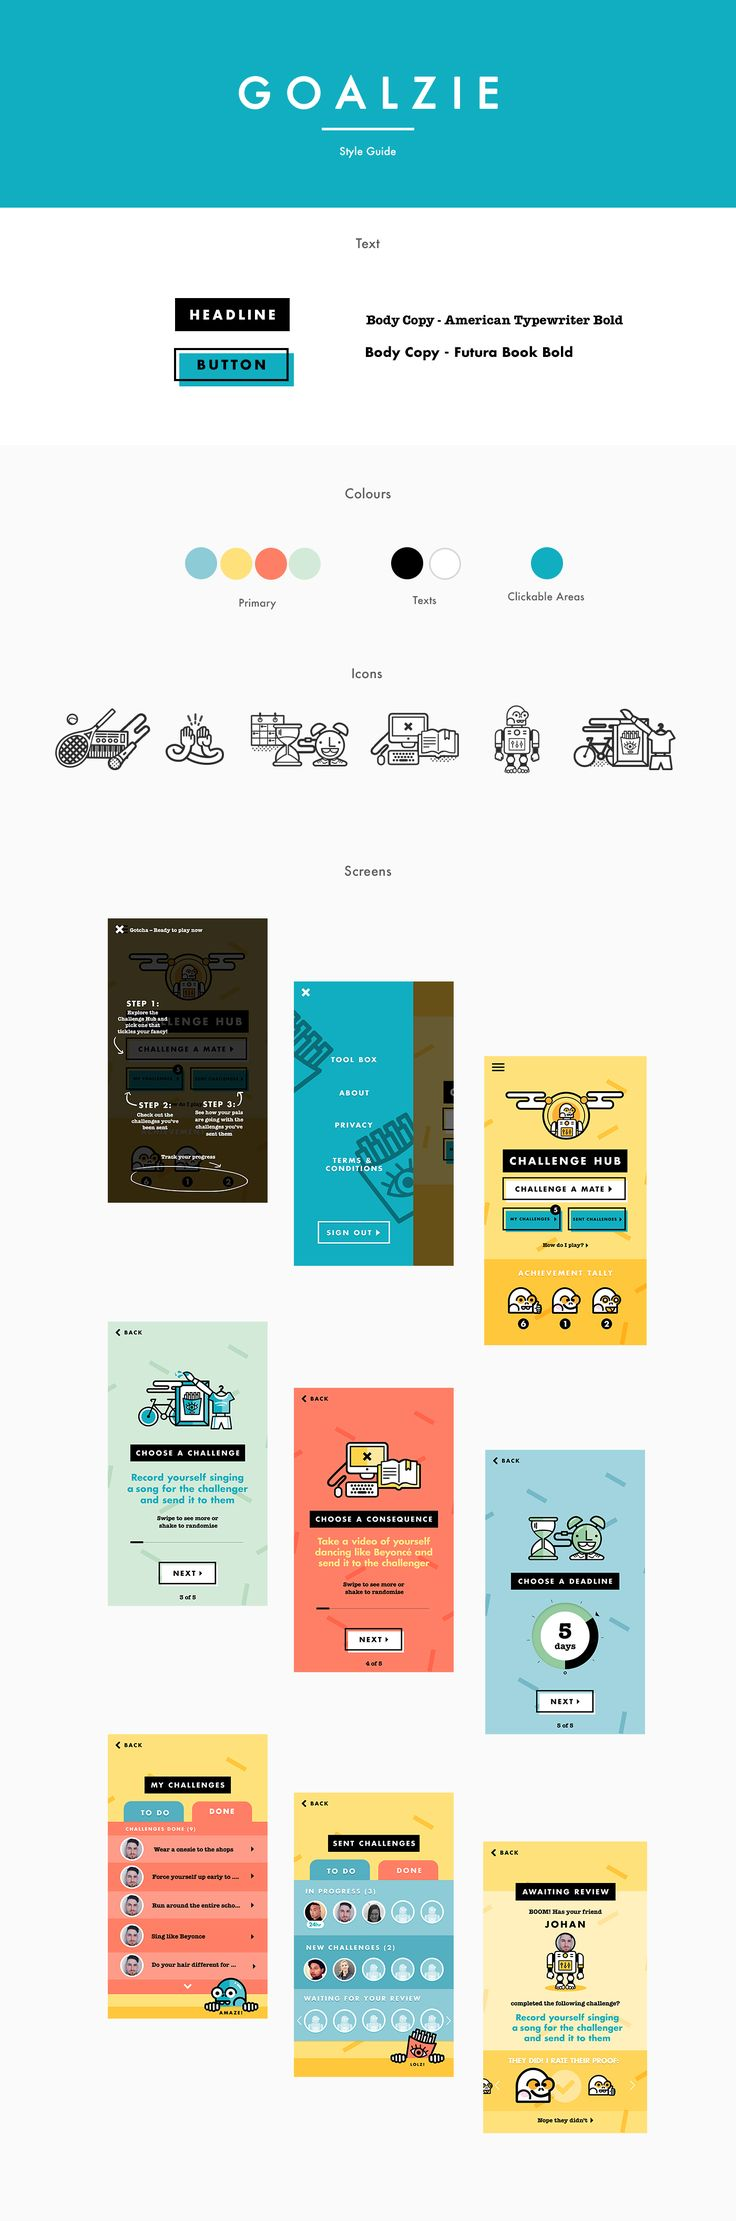 Design Direction / App UI Design / IllustrationGoalzie is a mobile app created…